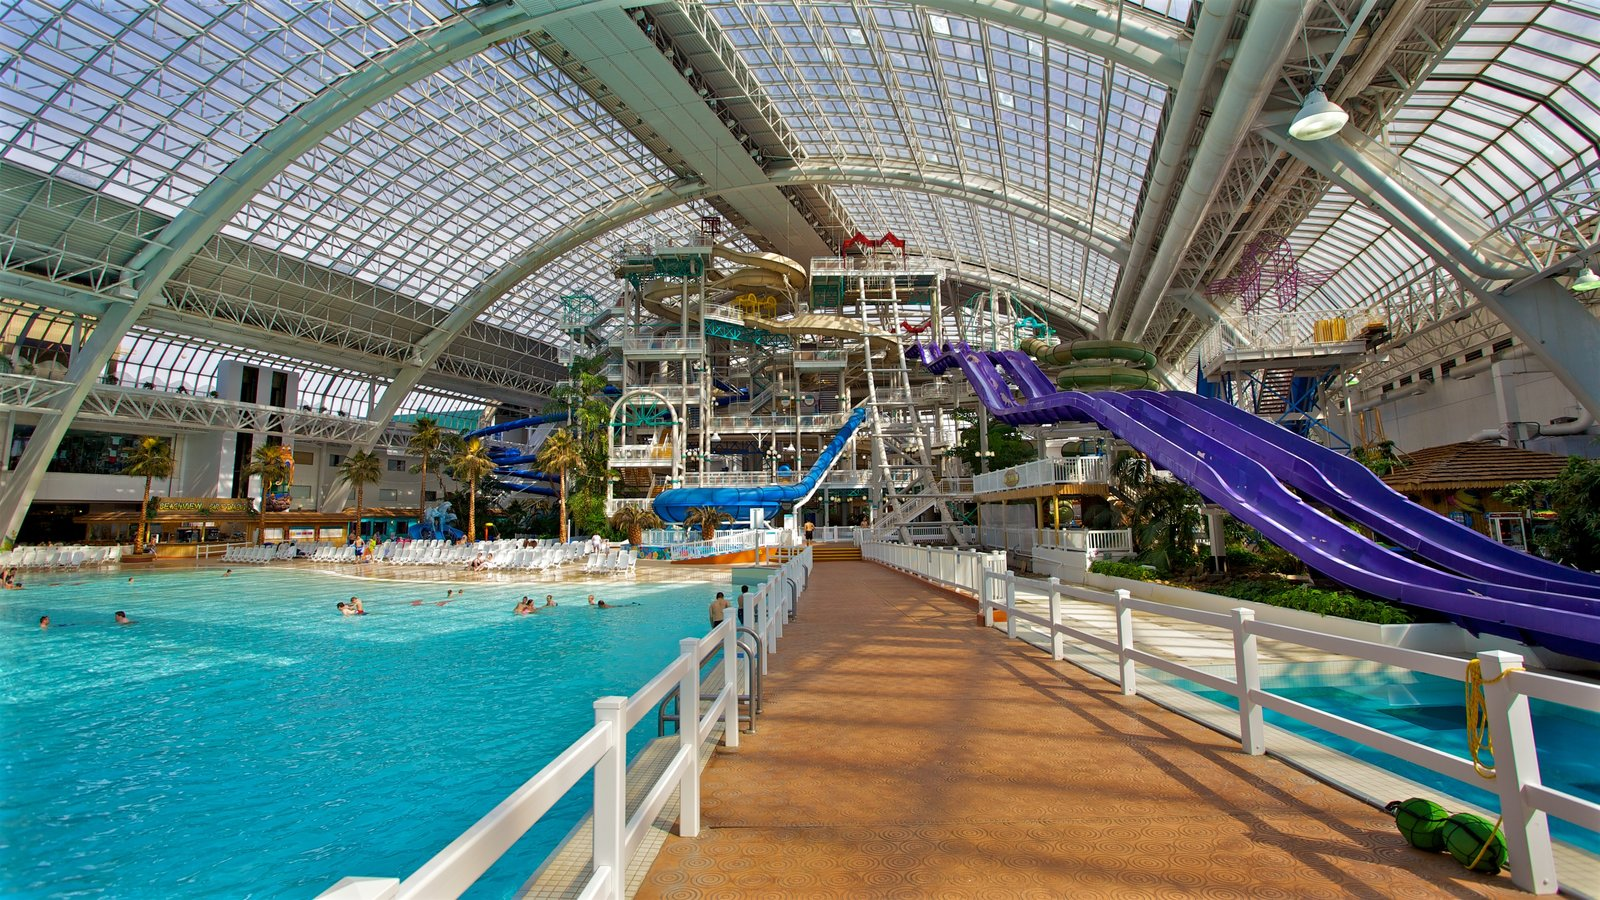 West Edmonton Mall featuring interior views and a water park